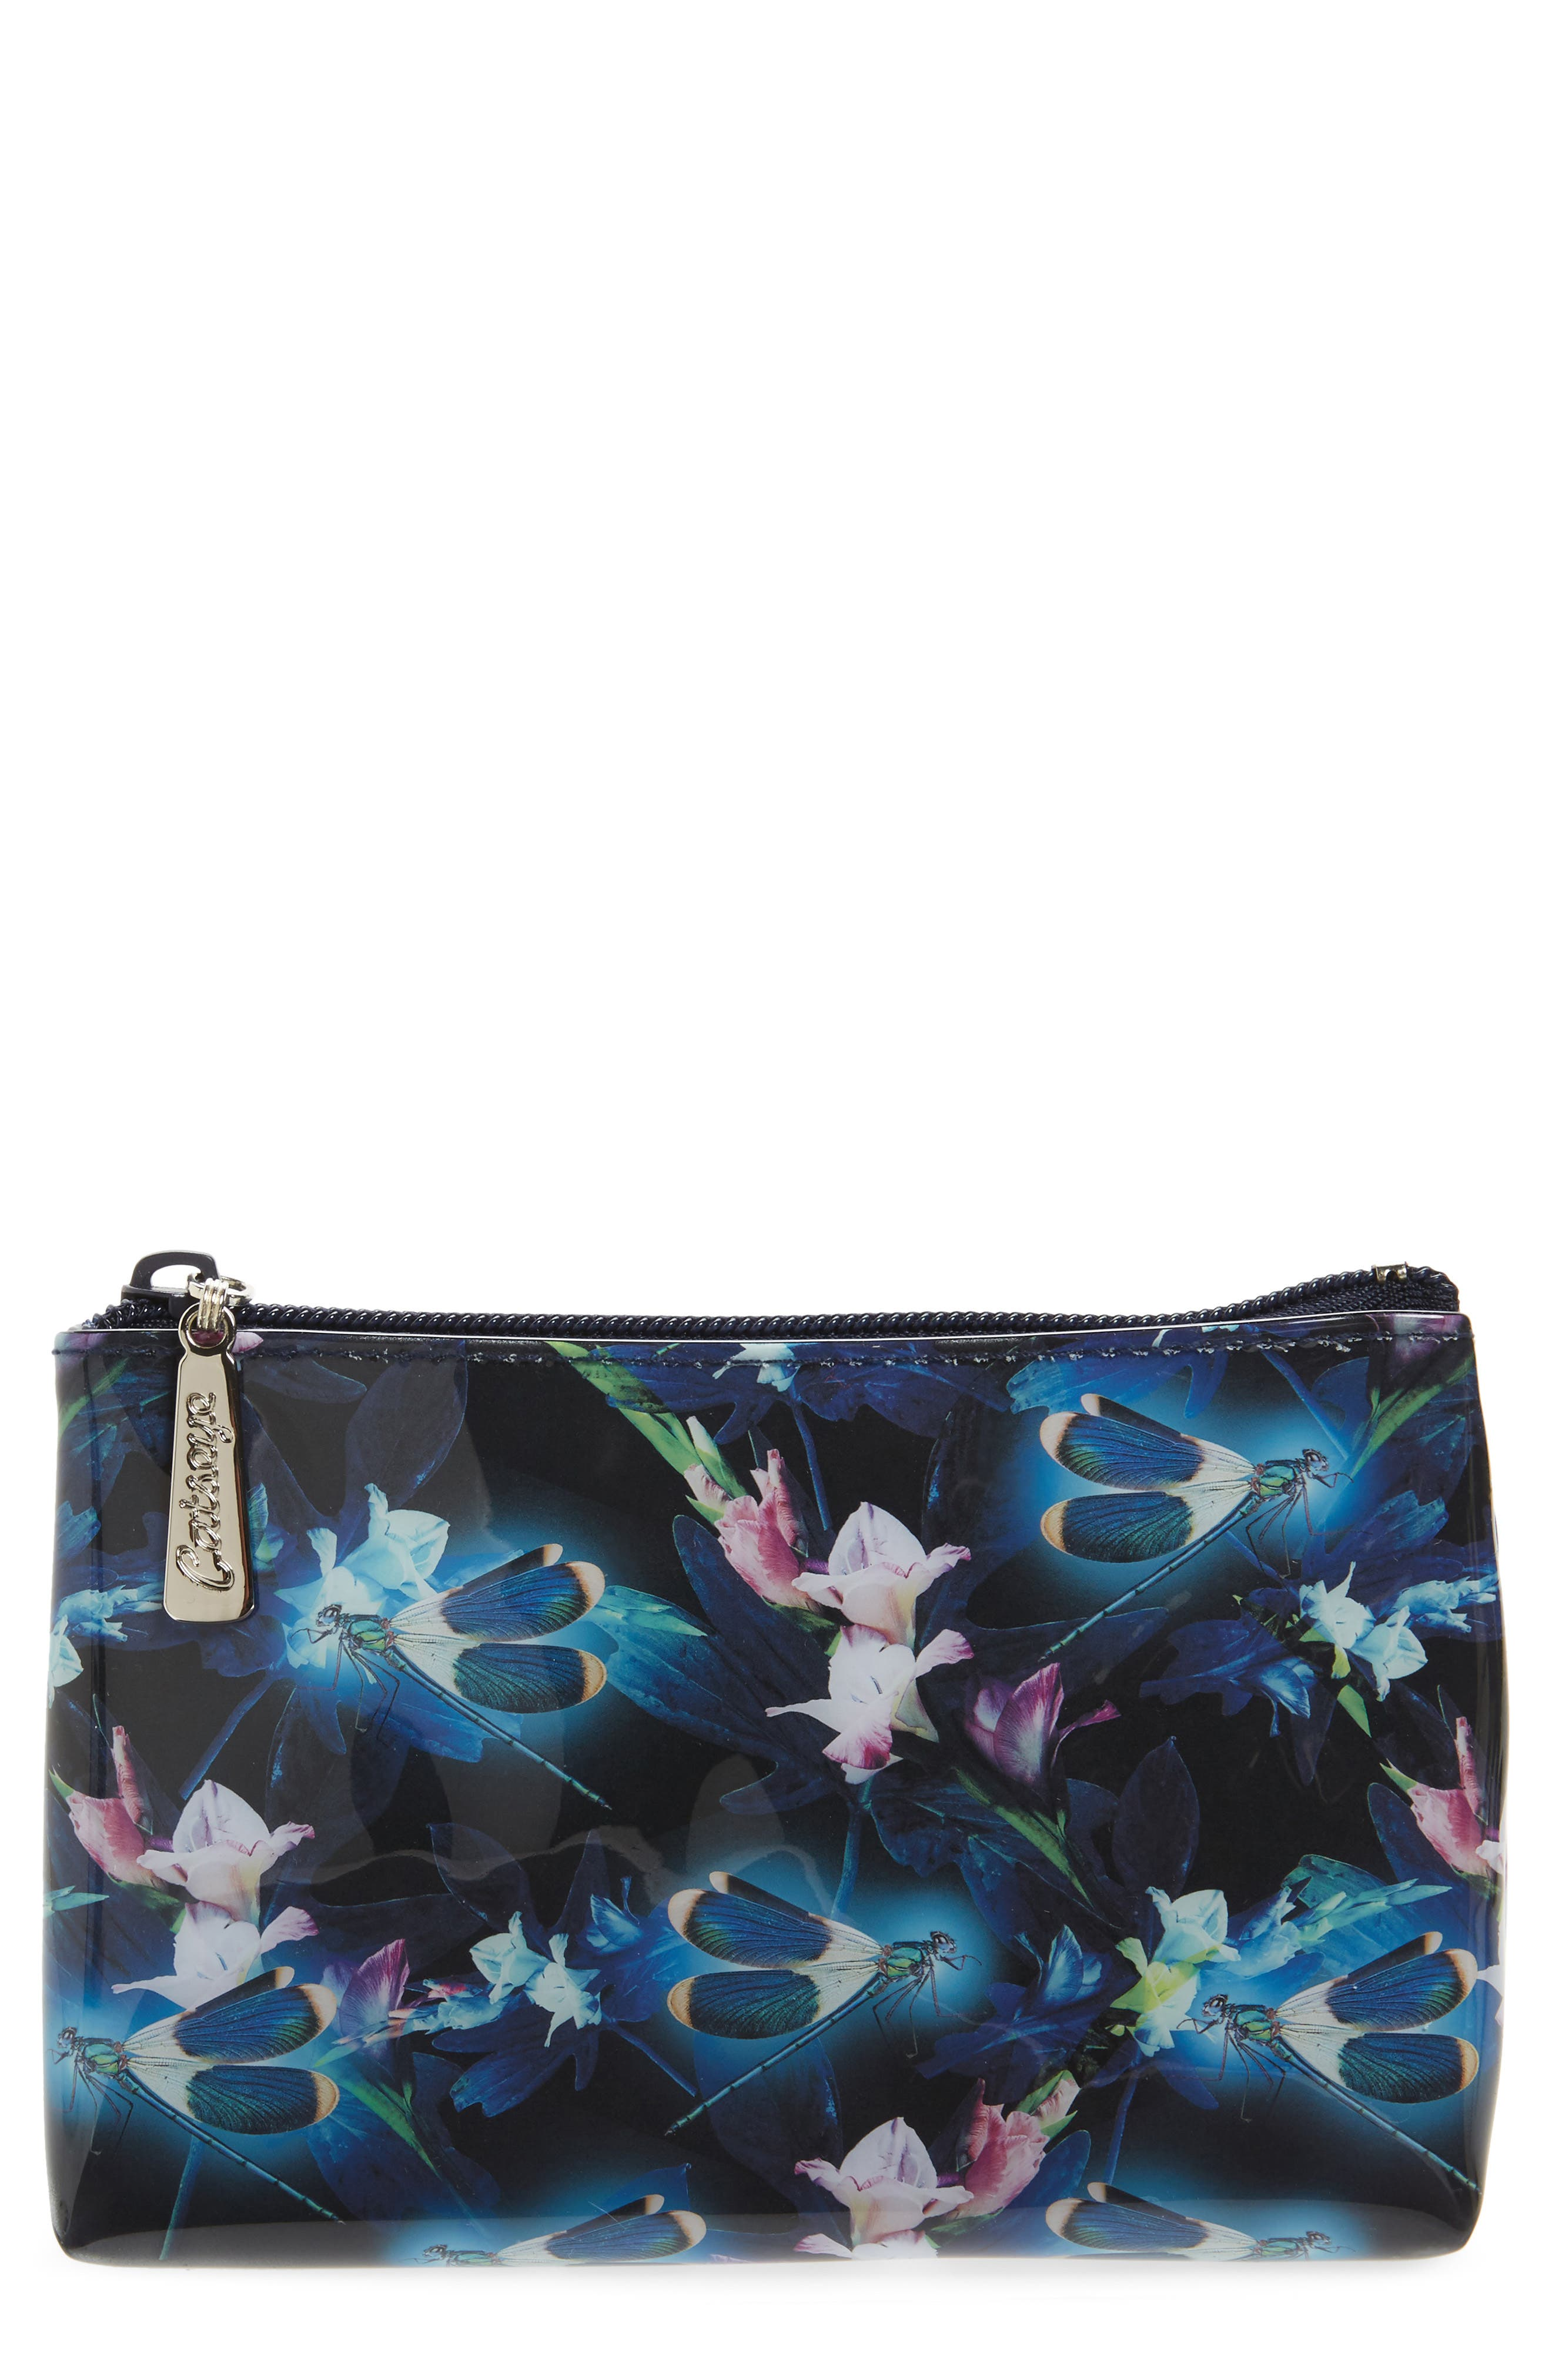 Night Blooms Cosmetics Pouch,                         Main,                         color, Black